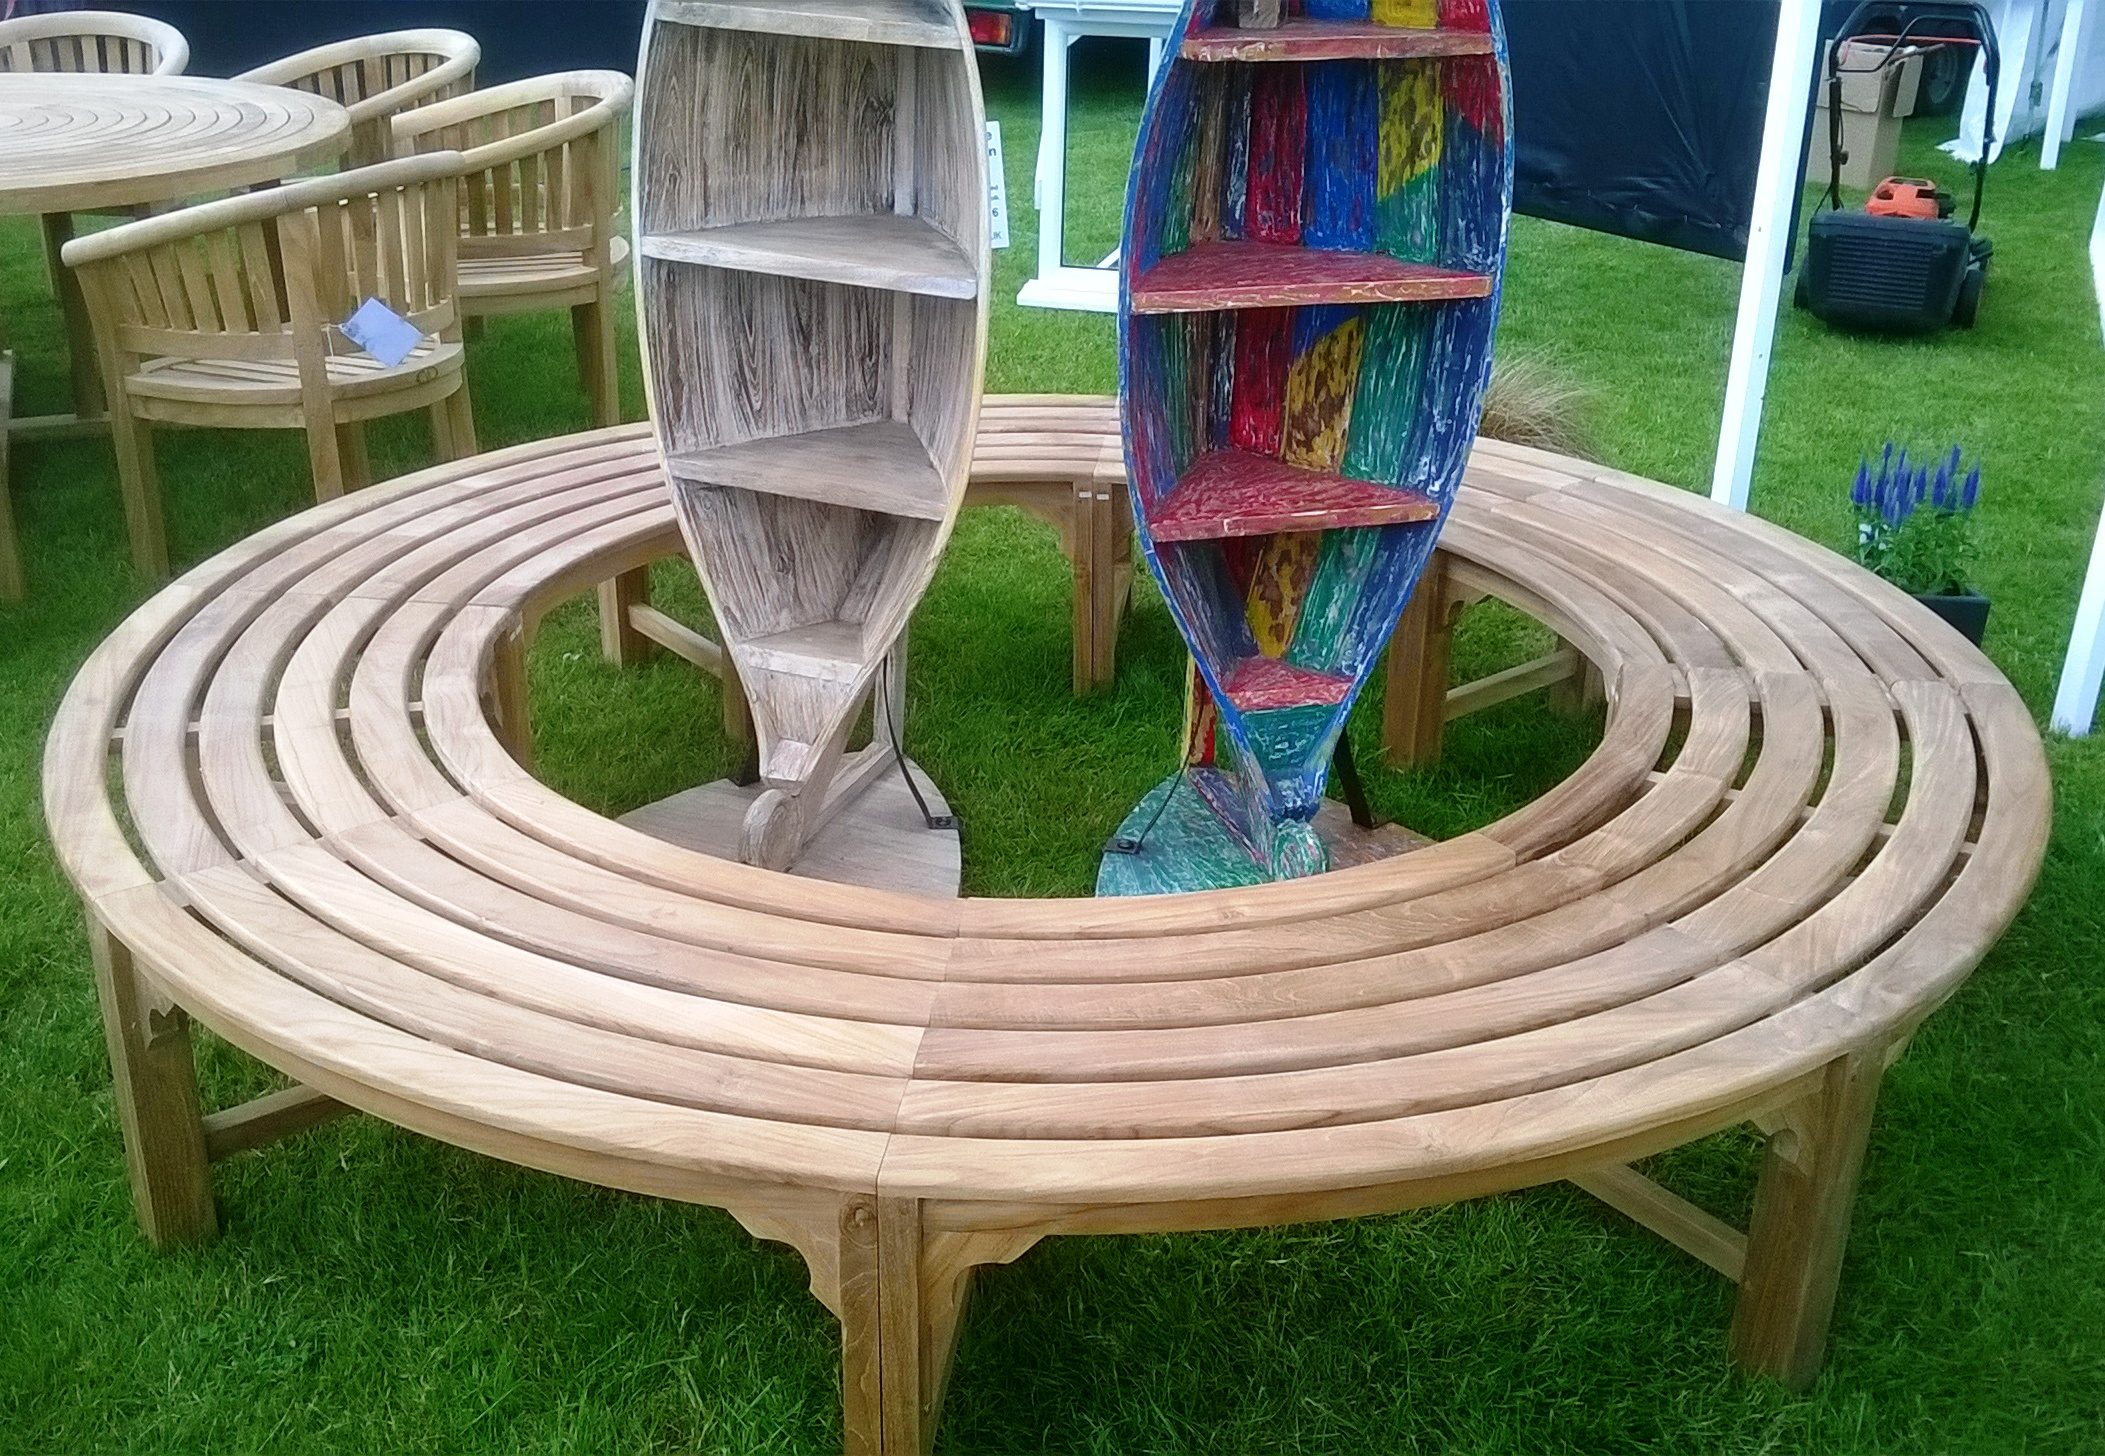 Awe Inspiring For Anyone That Is Looking For A Unique Piece Of Garden Squirreltailoven Fun Painted Chair Ideas Images Squirreltailovenorg